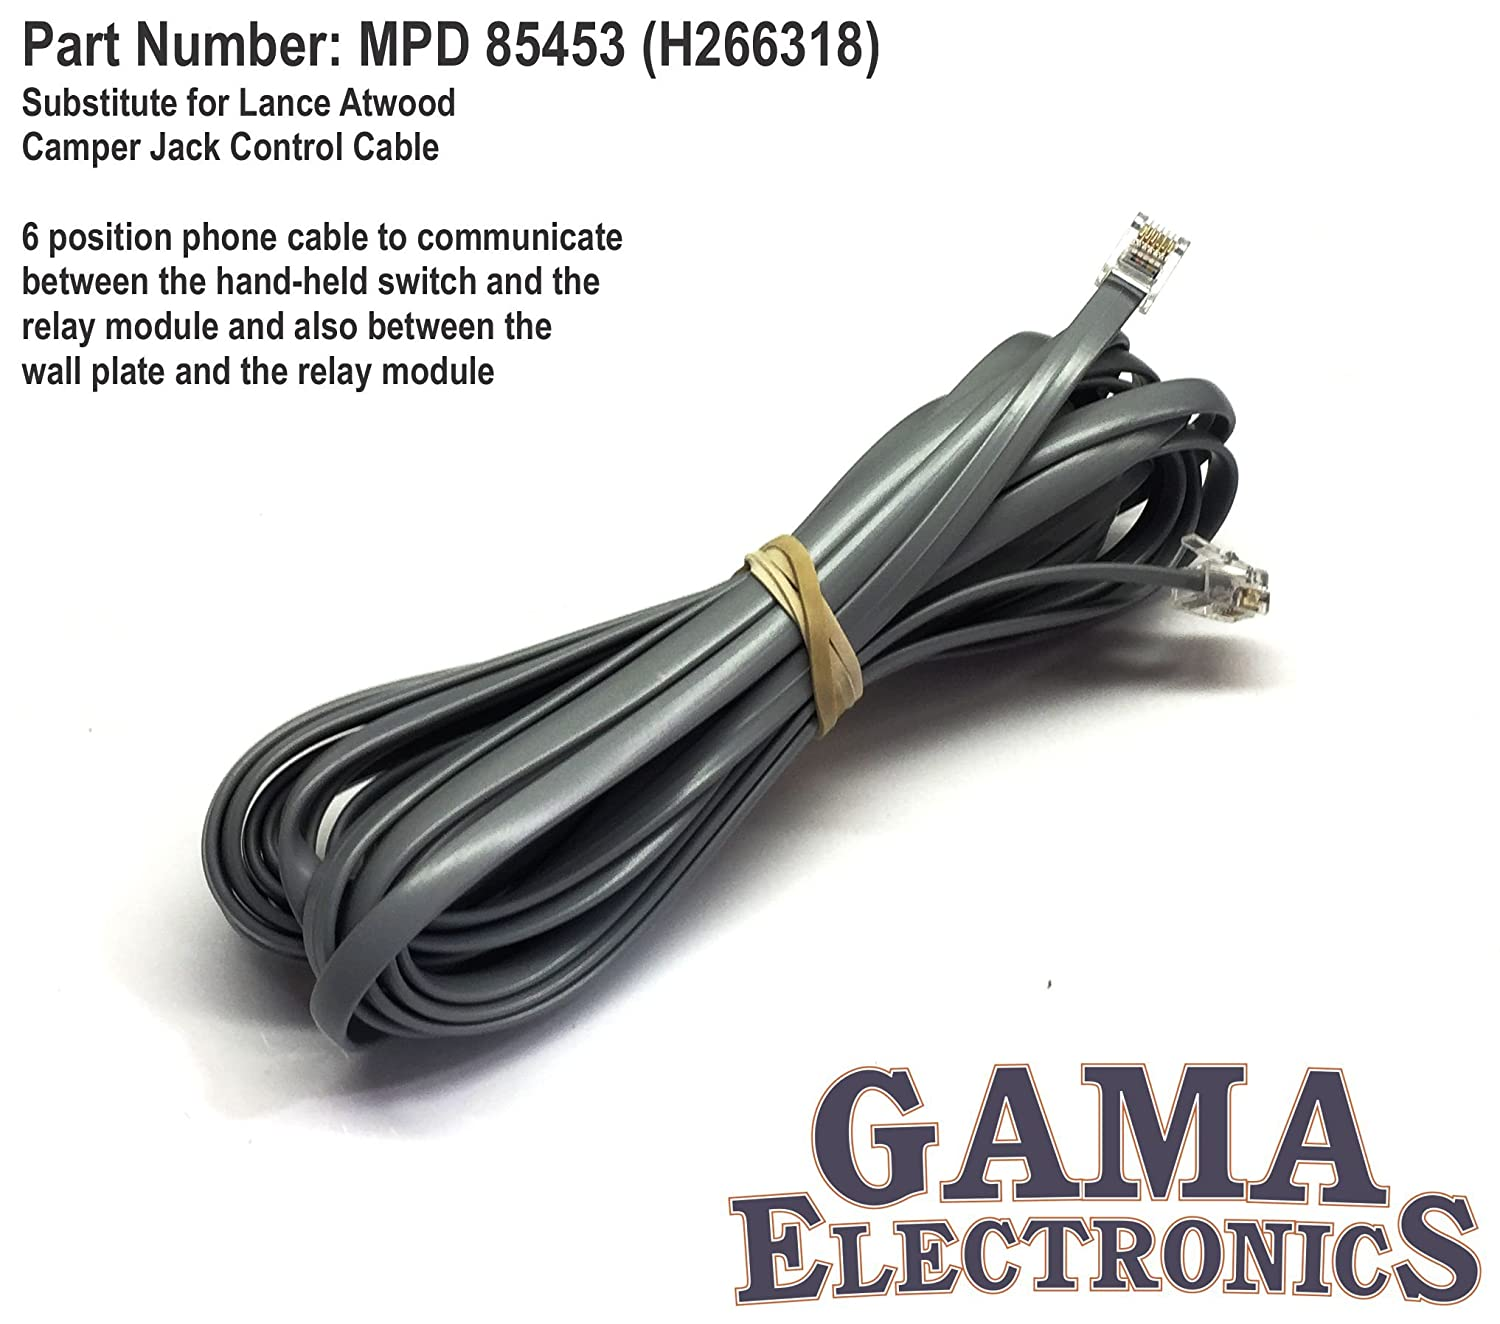 Substitute for Lance Atwood Camper Jack Control Cable GAMA Electronics Inc. MPD 85453